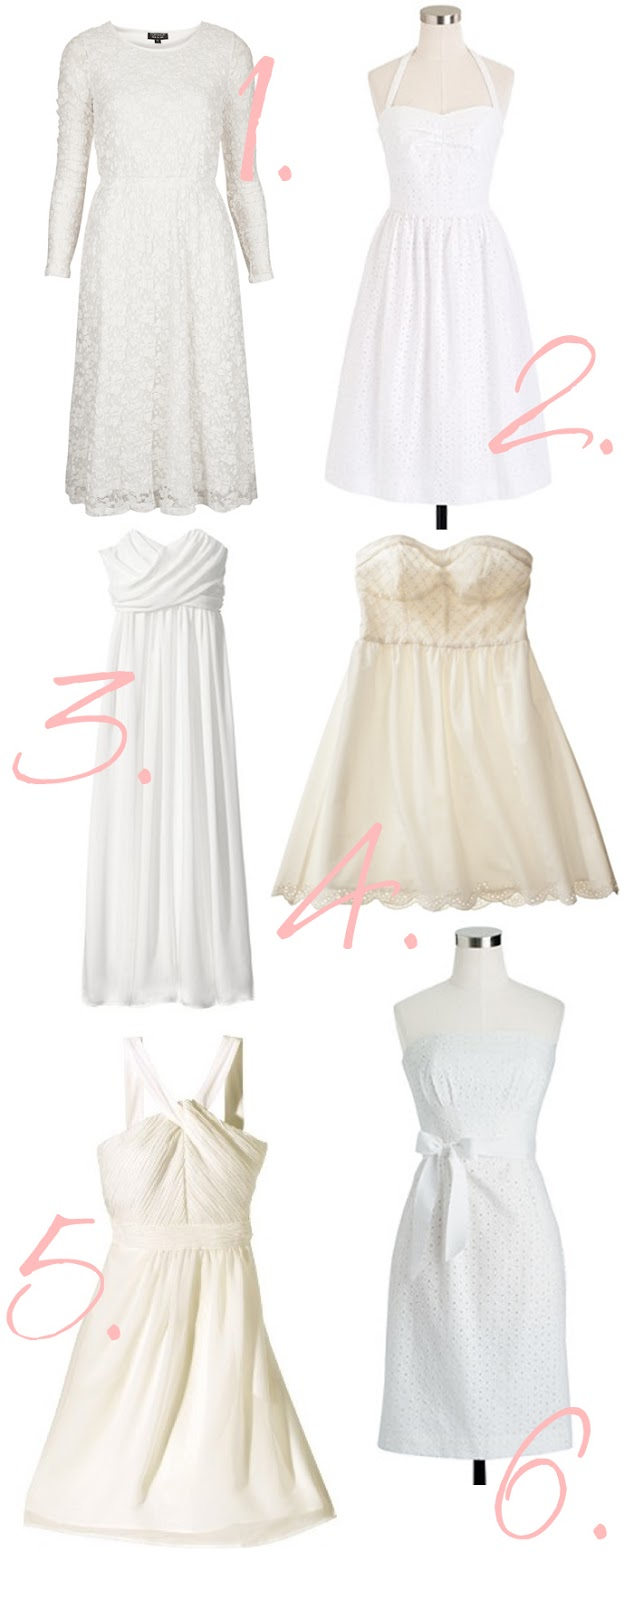 Here & Now: The Little White Dress